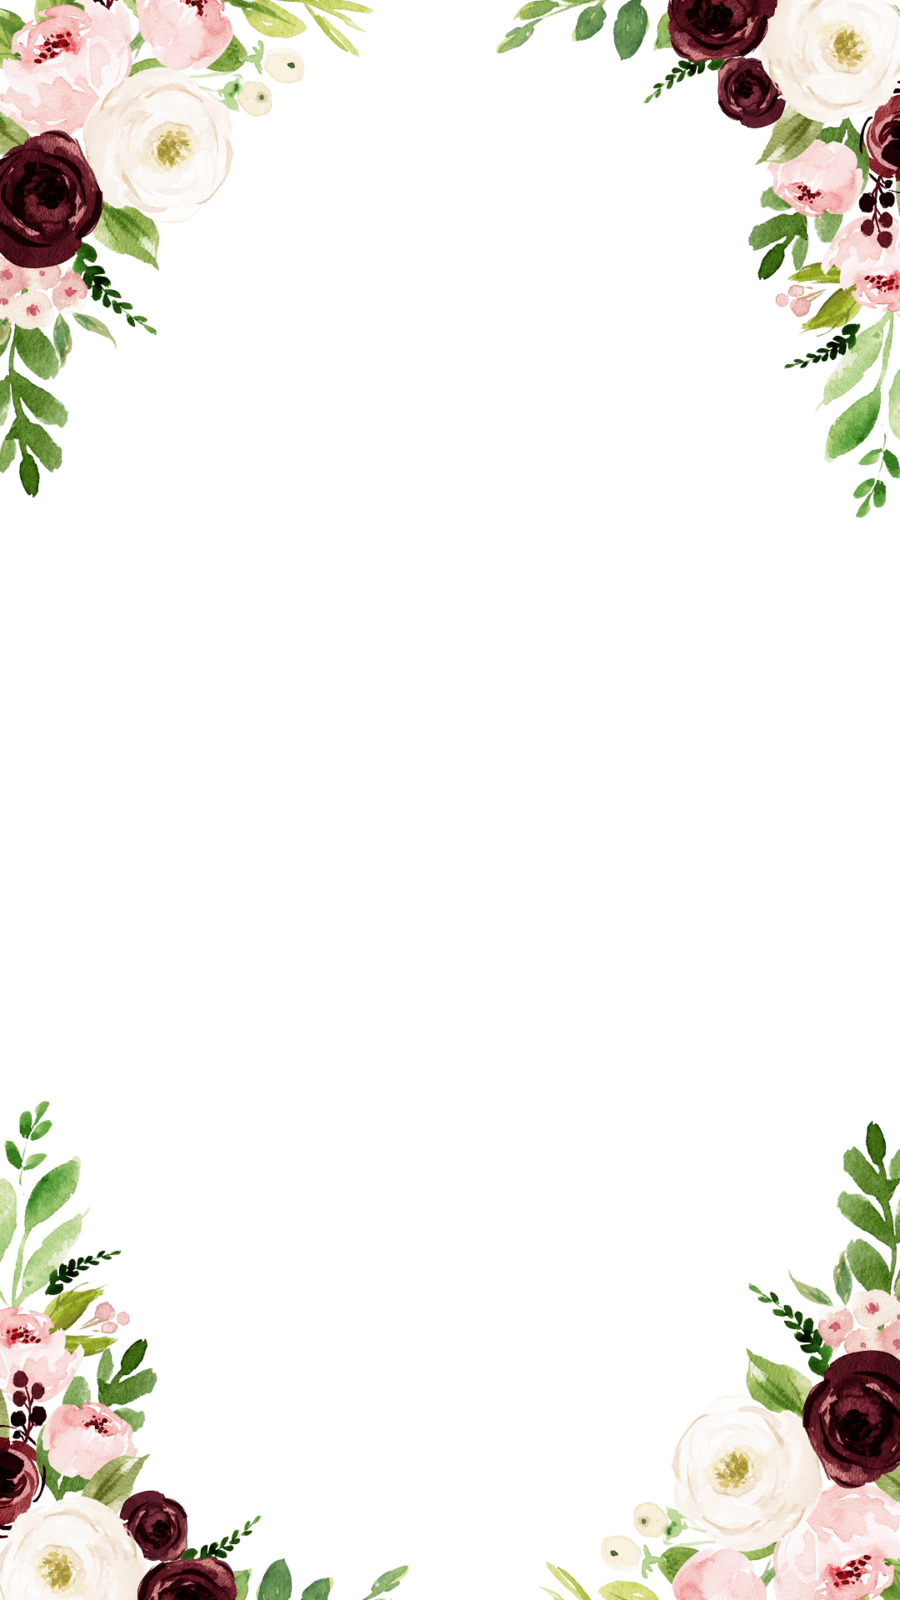 Library of floral border freeuse stock png files Clipart ...